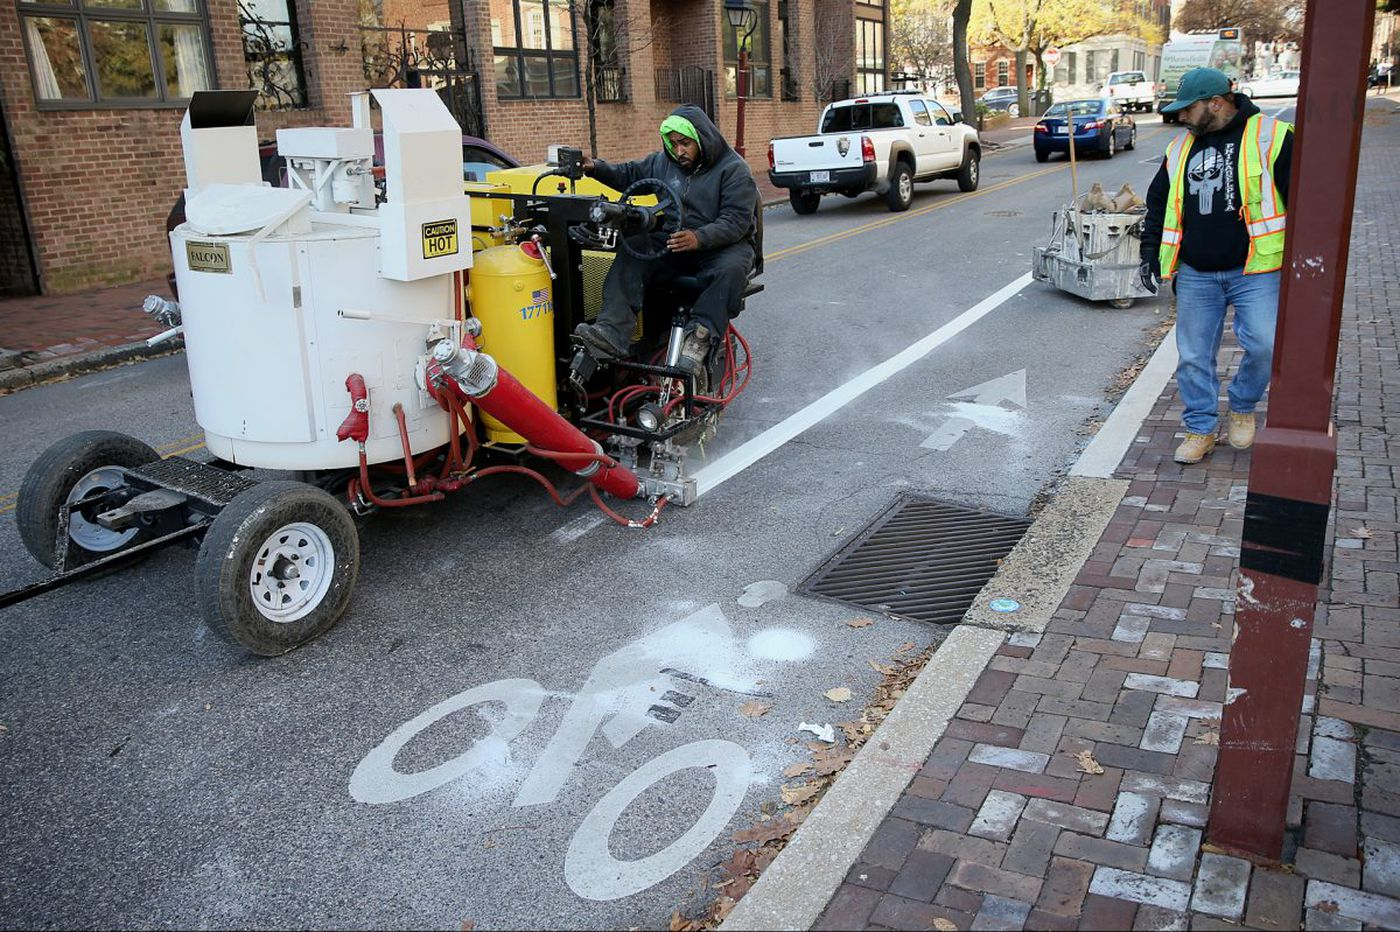 Philadelphia looks to flip bike lanes where fatal accident occurred